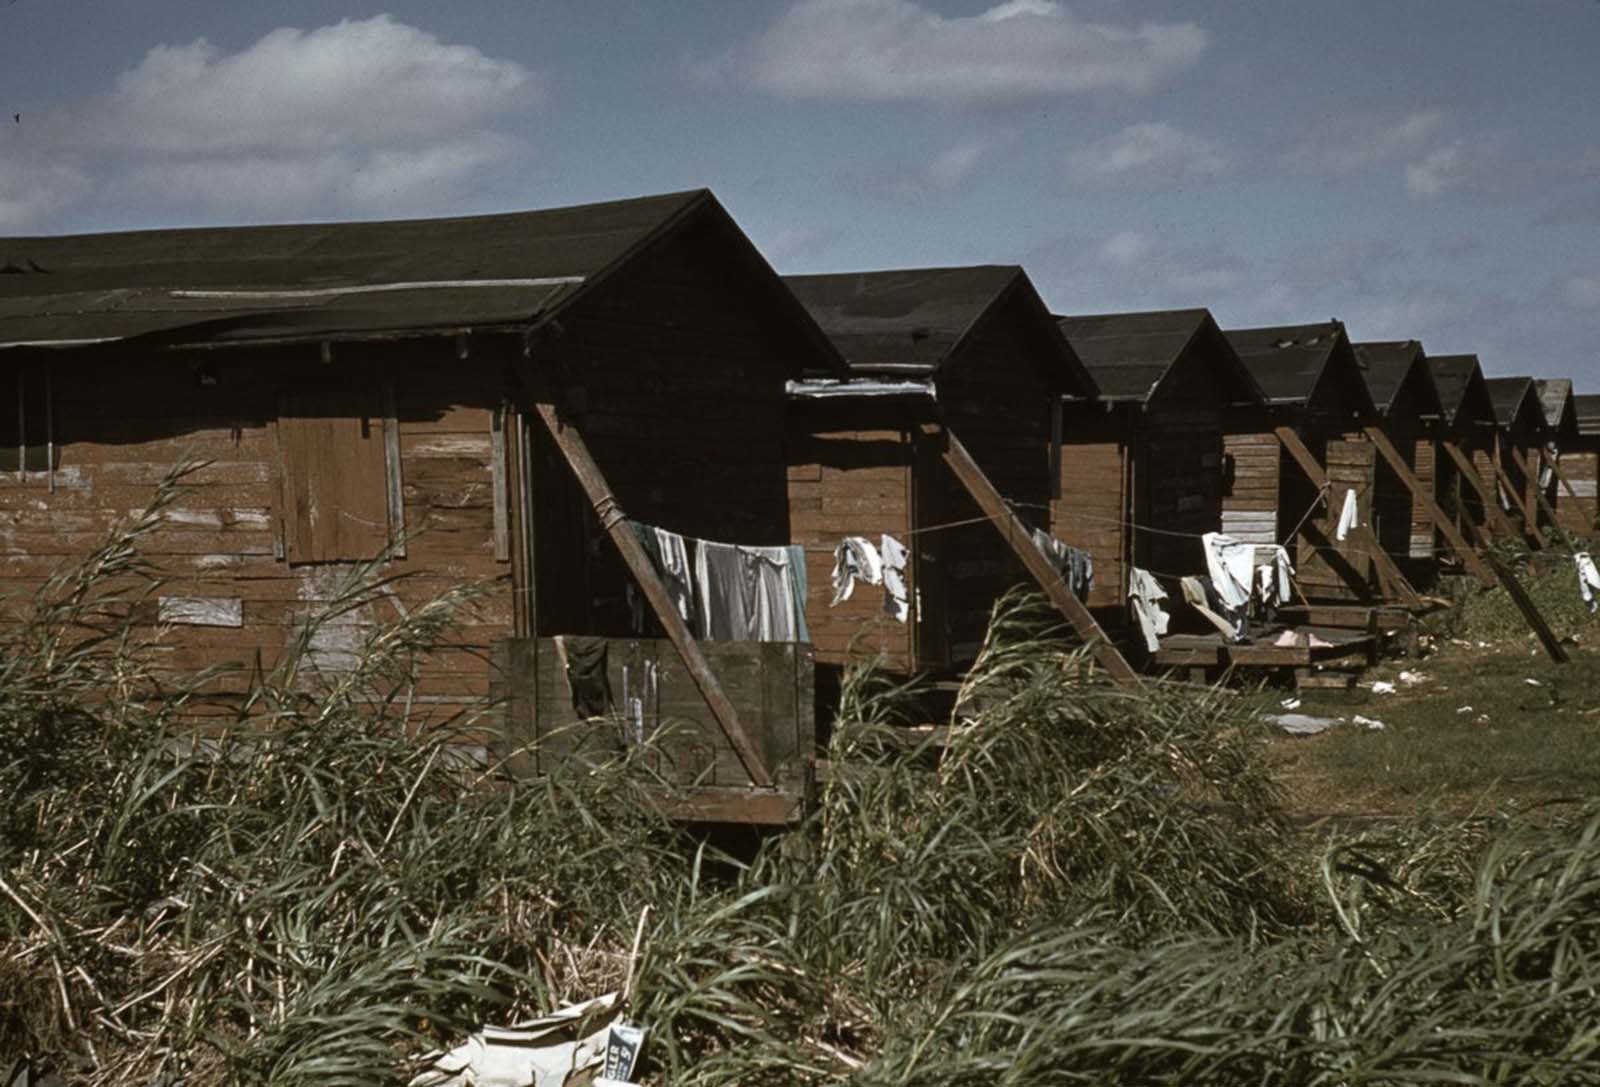 Condemned housing for migrant sharecroppers in Belle Glade, Florida.